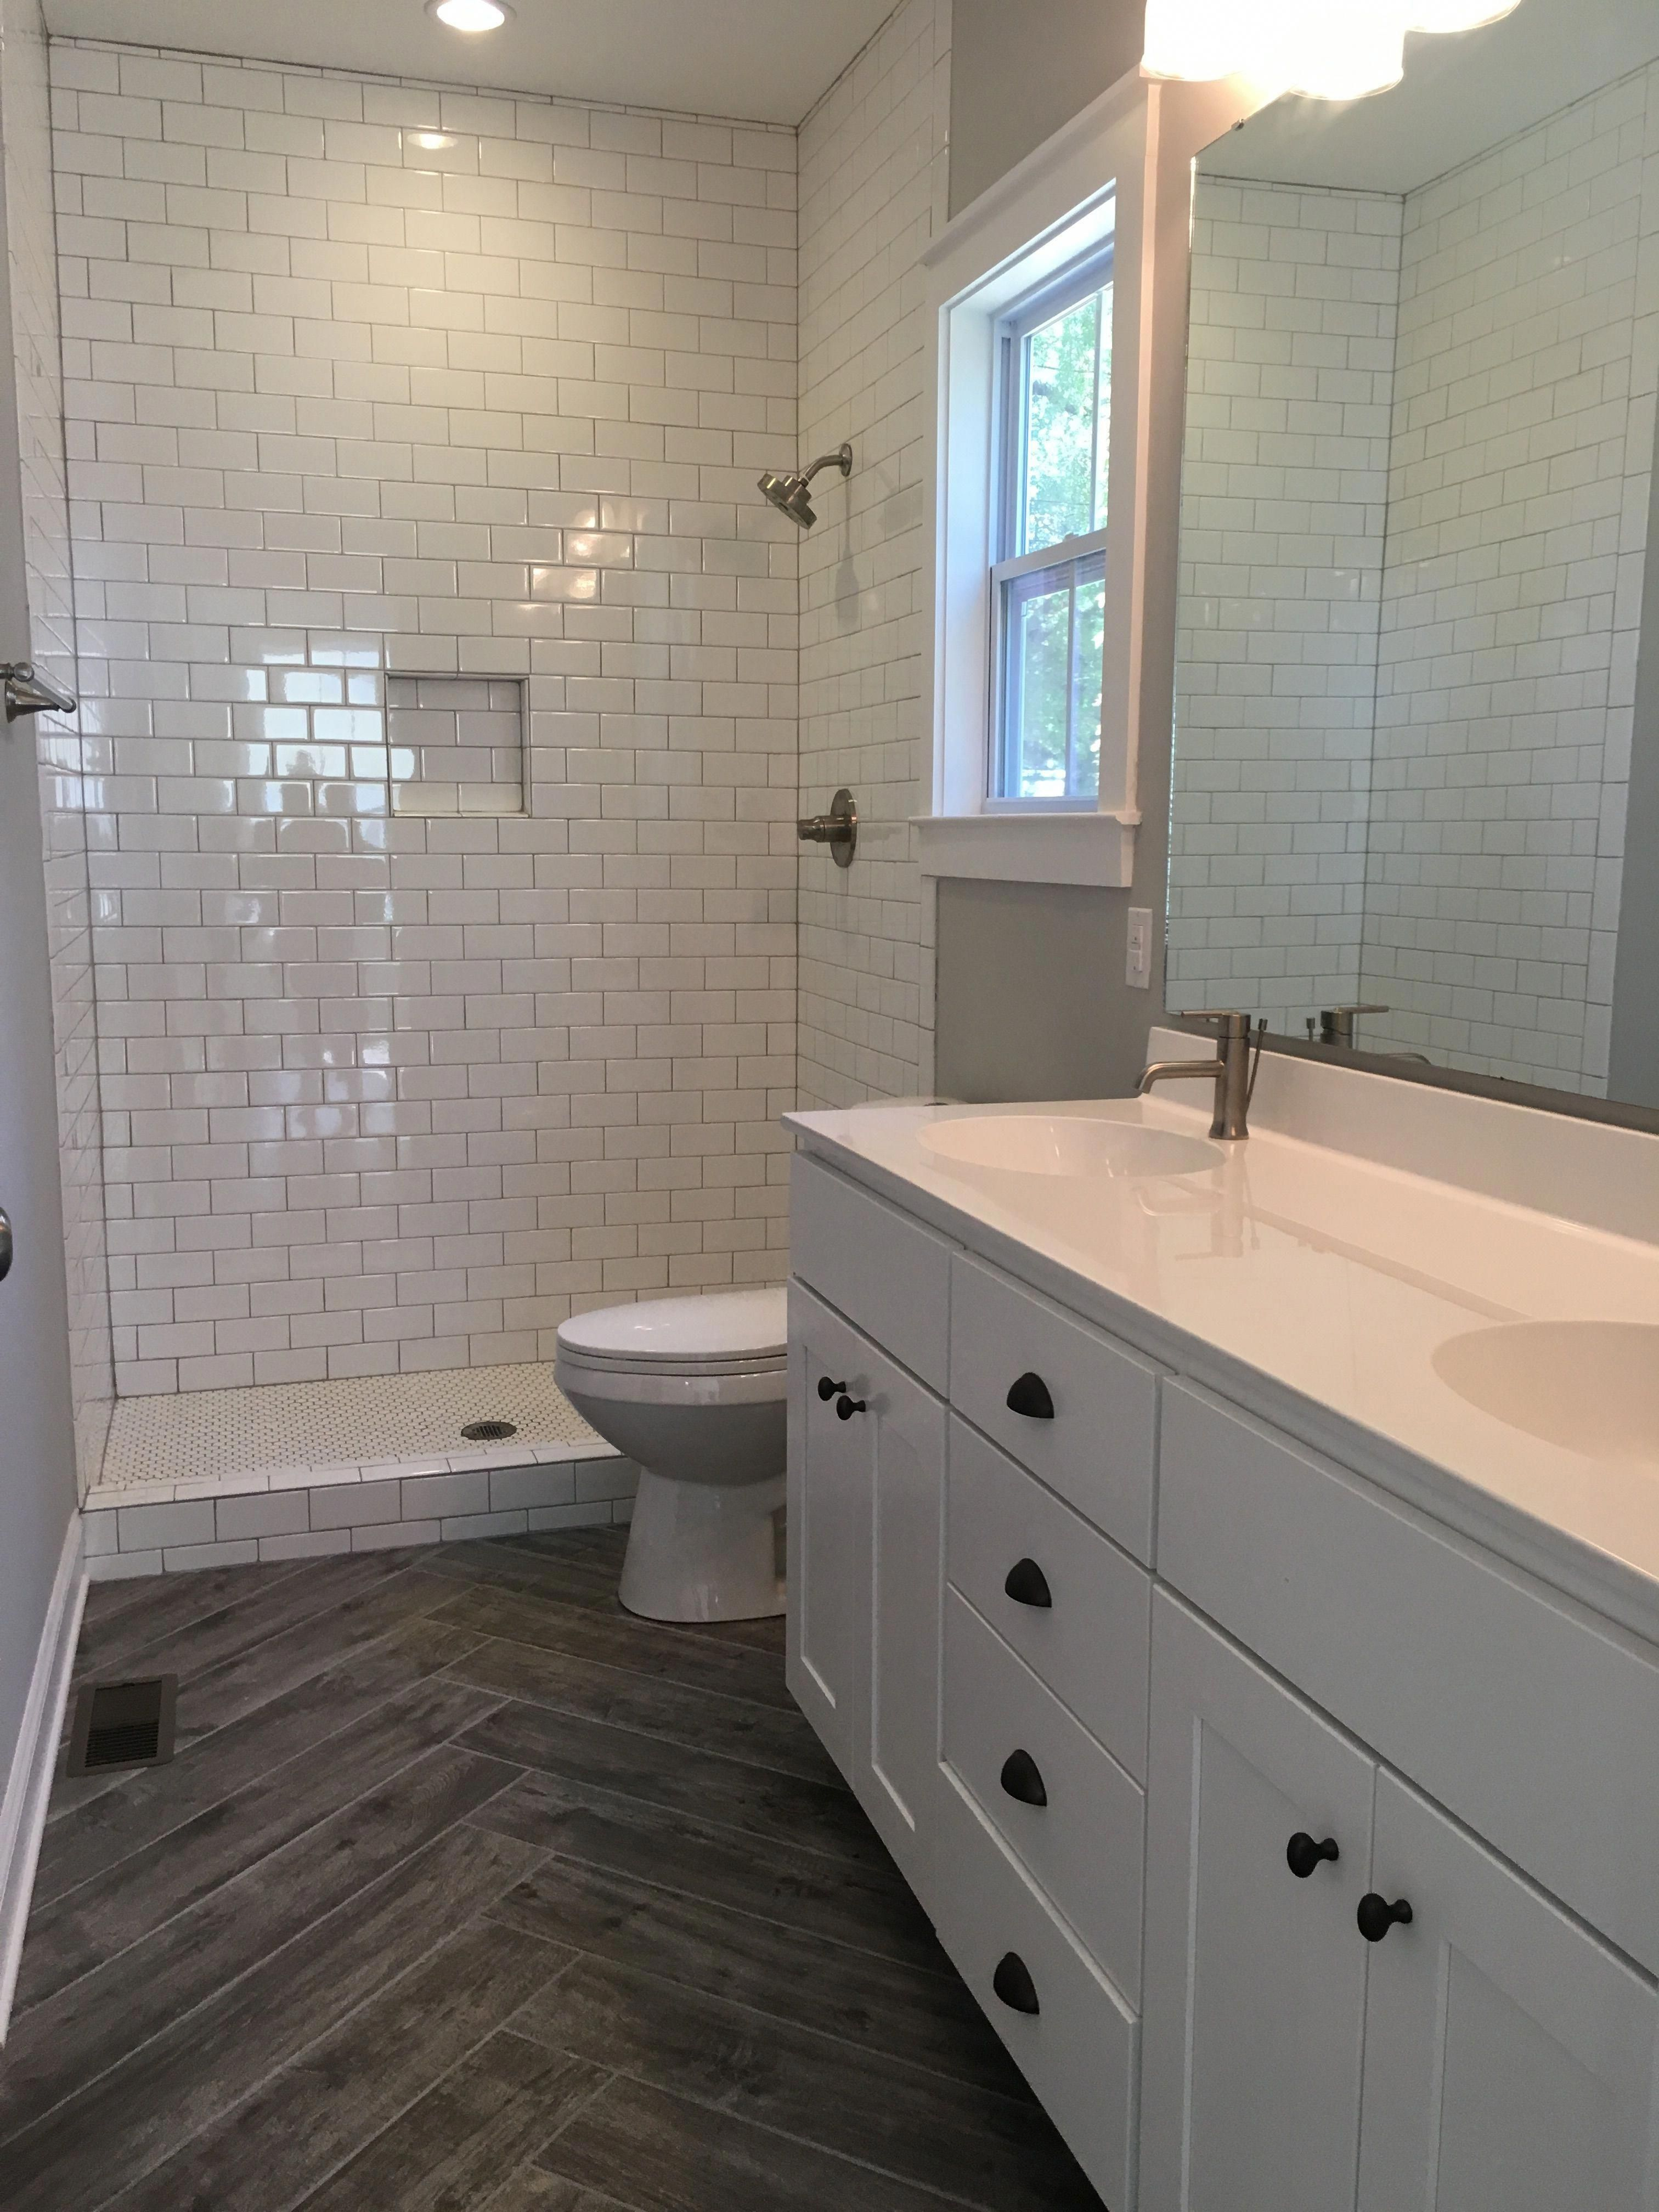 How To Remodel Your Bathroom Diy 1200 Budget Watch This Bathroom Renovation Diy Bathrooms Remodel Bathroom Remodel Pictures